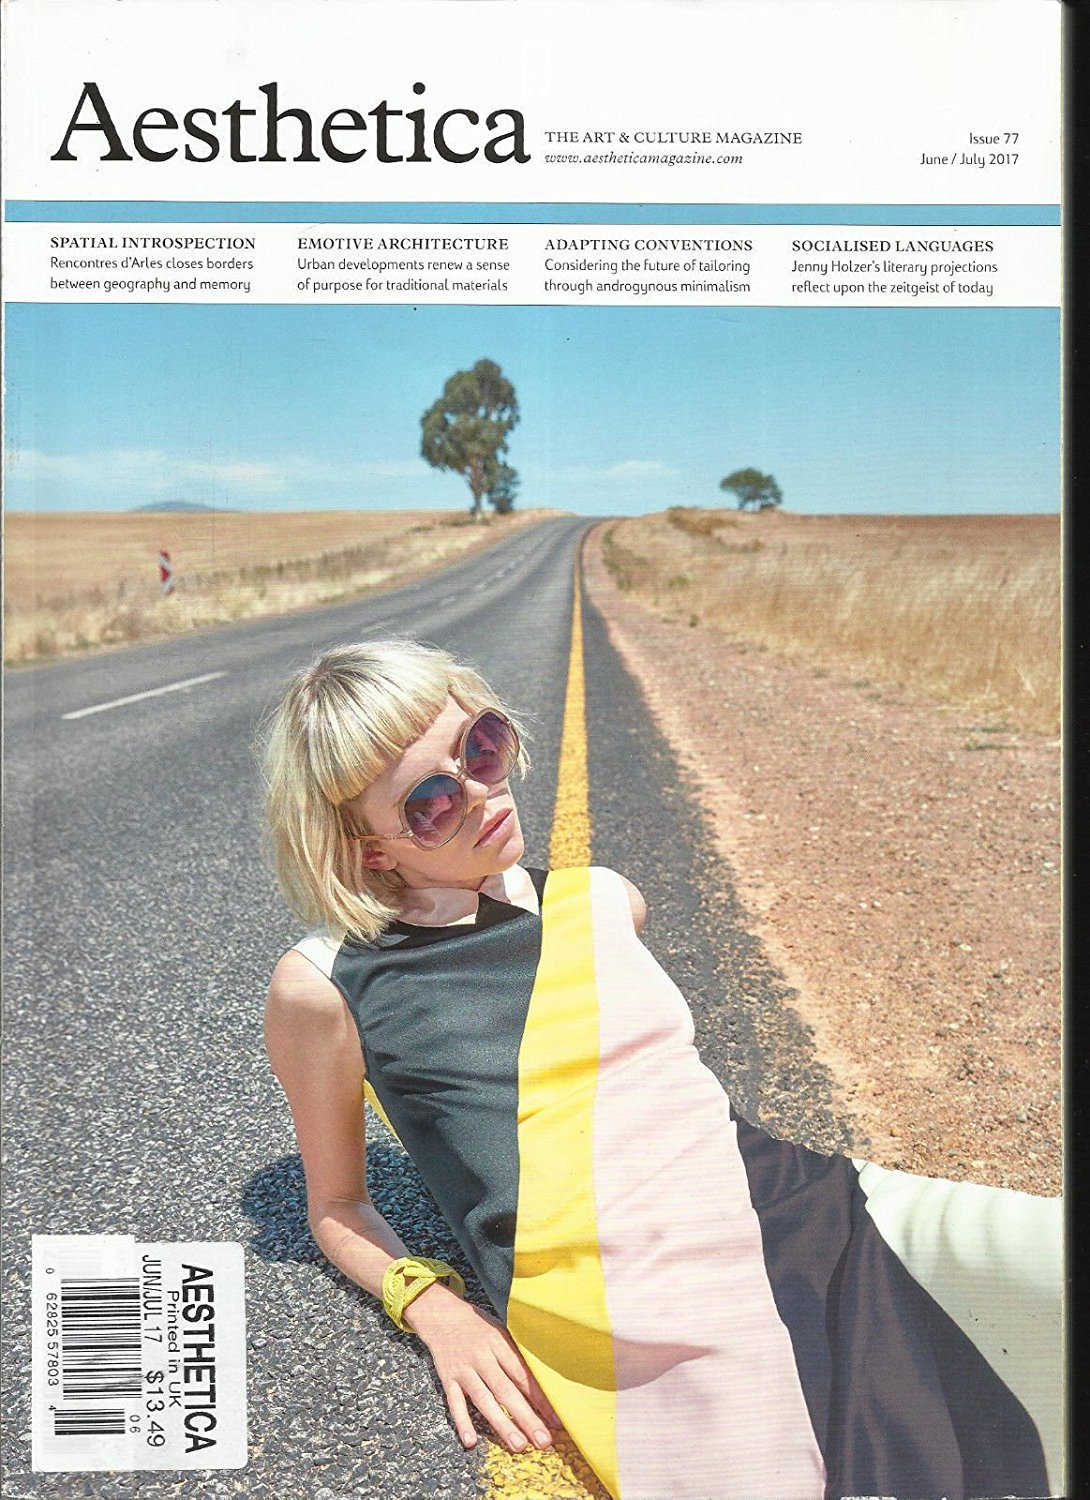 AESTHETICA, THE ART & CULTURE MAGAZINE JUNE / JULY 2017 ISSUE, # 77